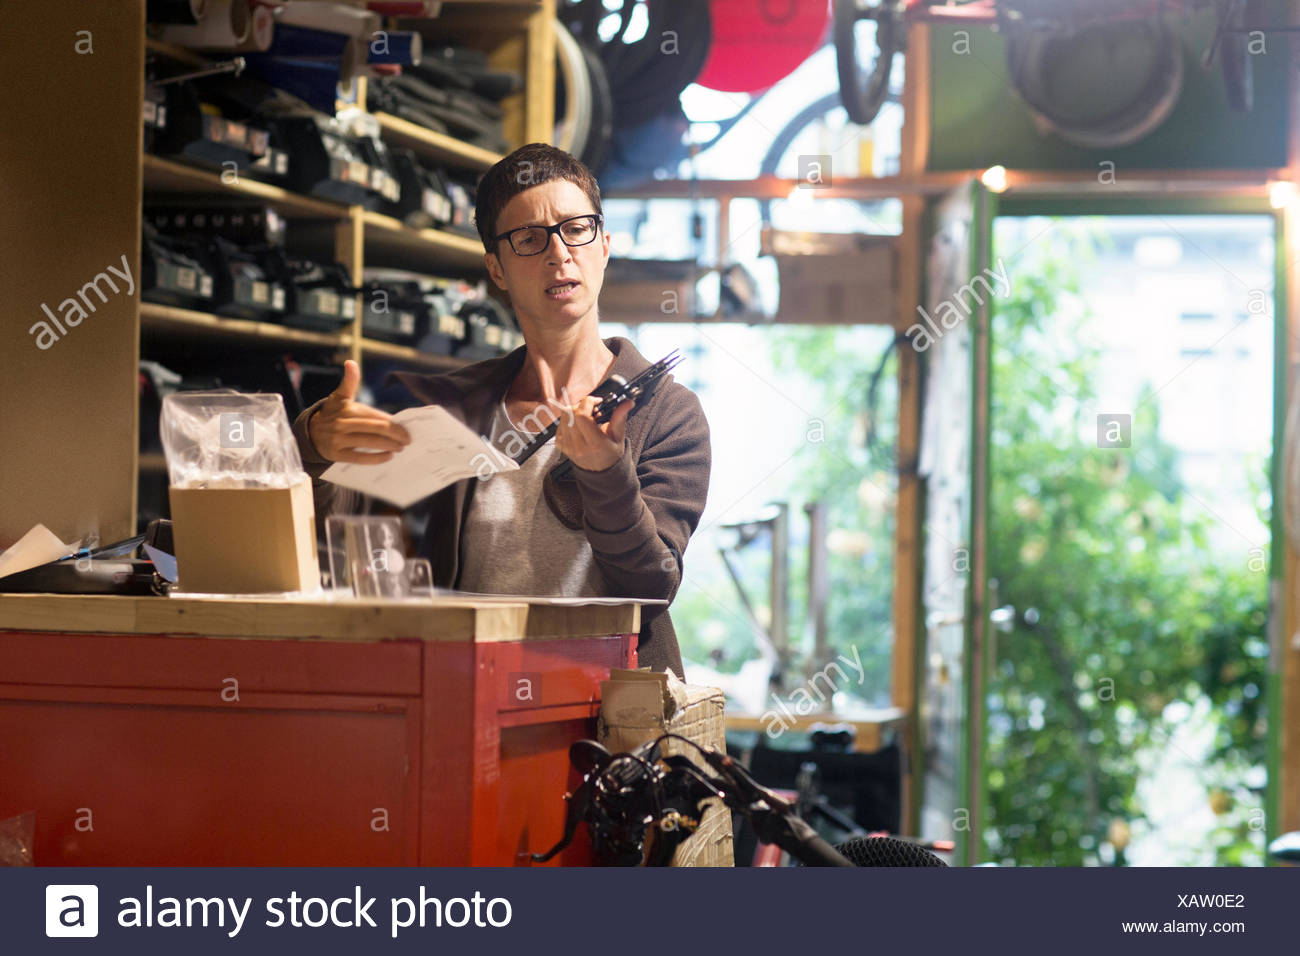 Woman at counter in bicycle workshop holding bike part and paperwork - Stock Image